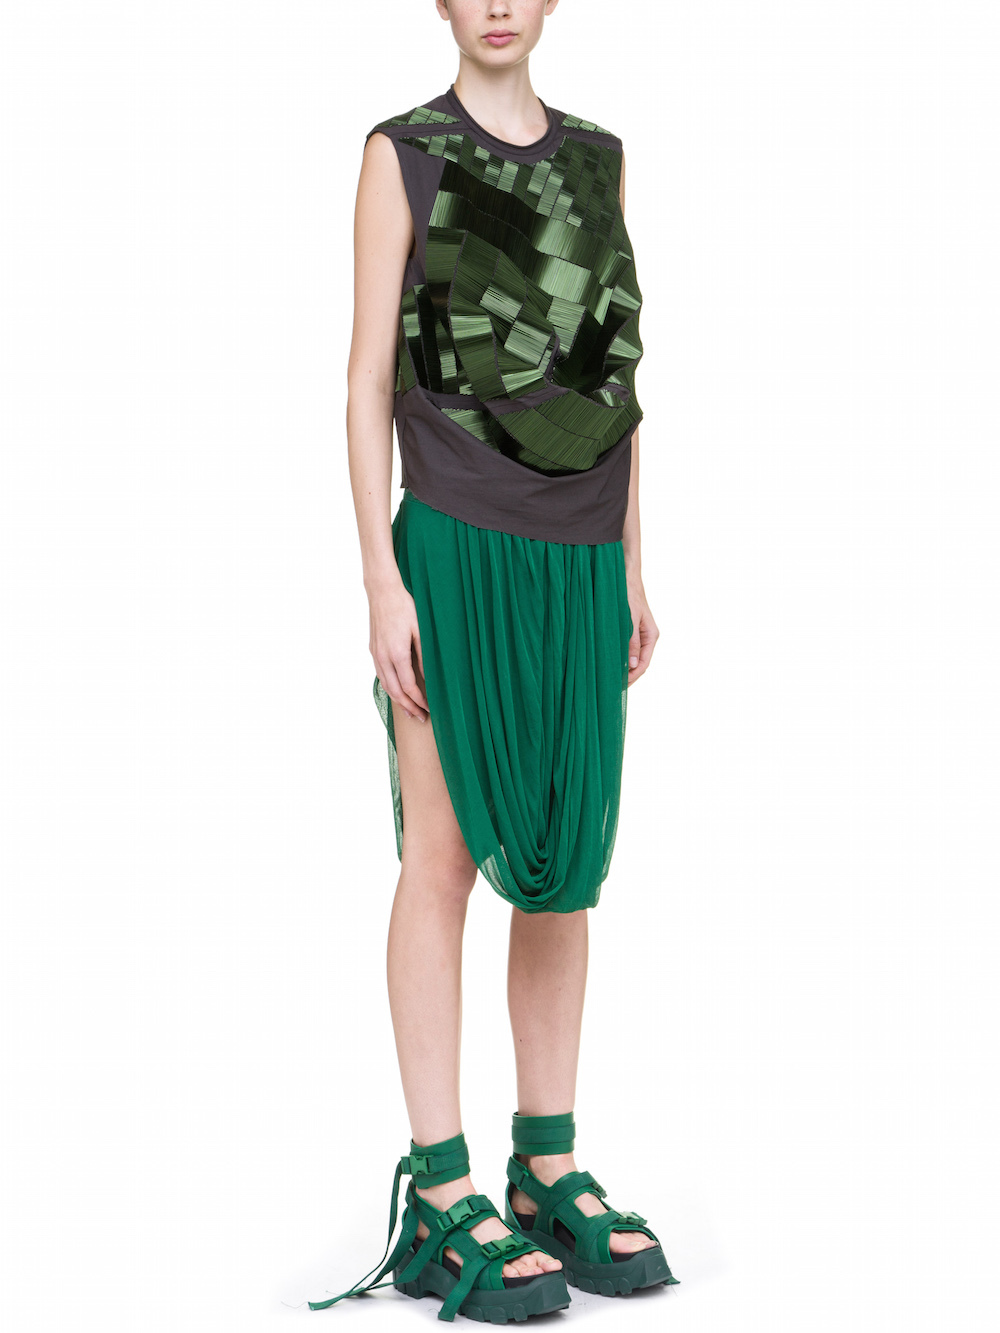 RICK OWENS SUBHUMAN TOP Y COVERED BY SAGE GREEN BUGLE BEADS